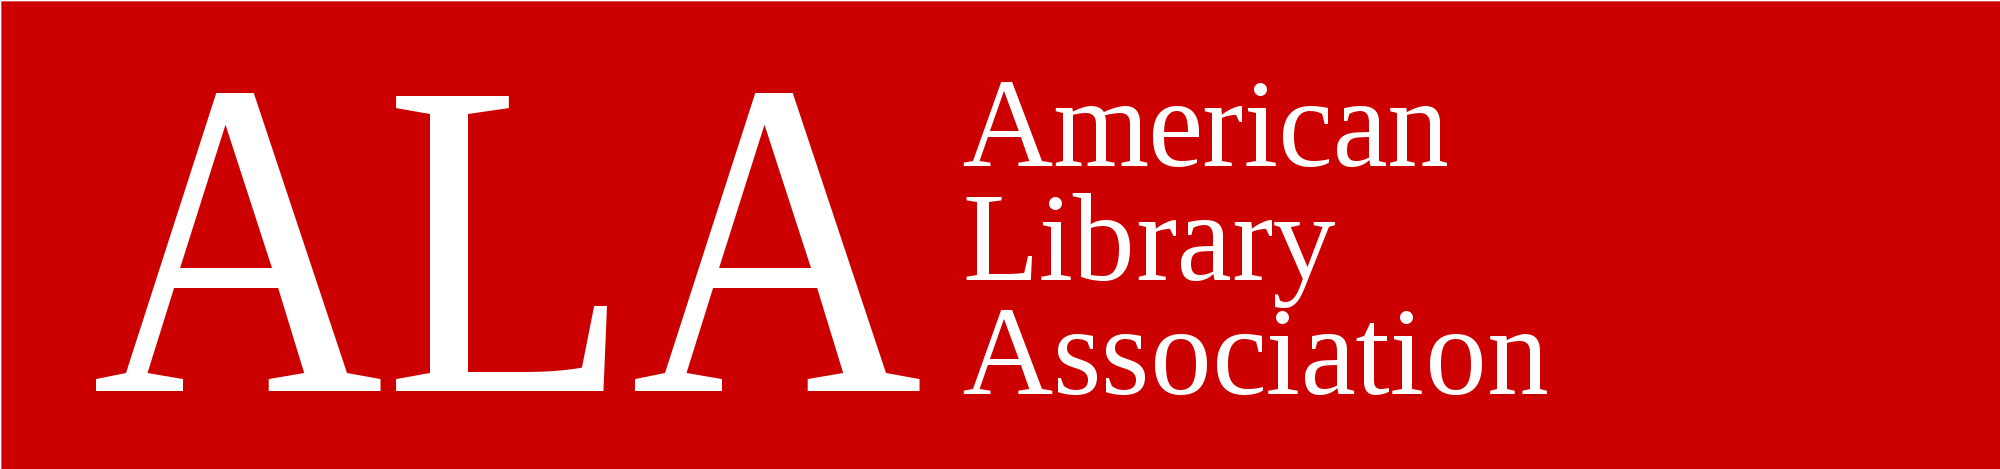 American Library Association American Library Association By Winson Woo Infographic